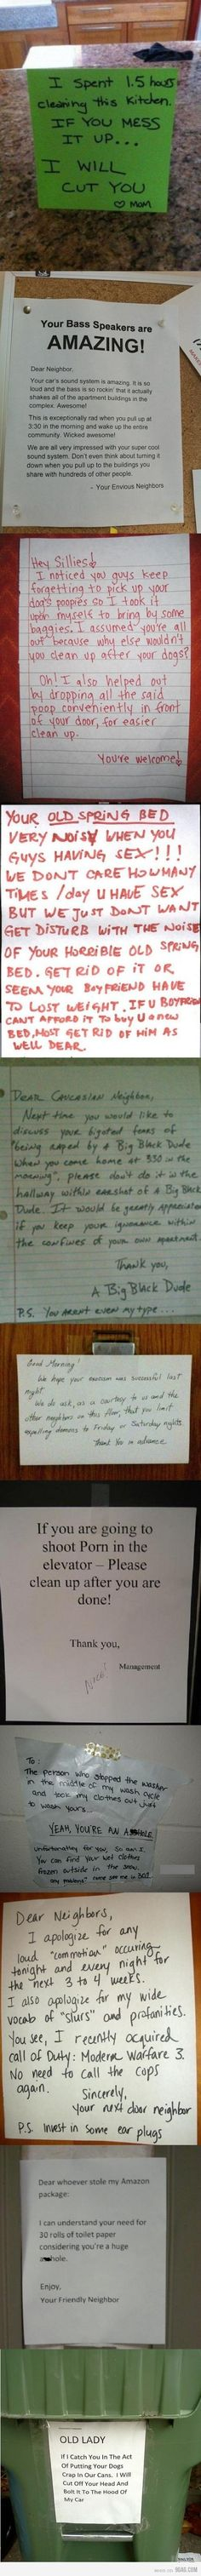 passive agressive notes for the win!